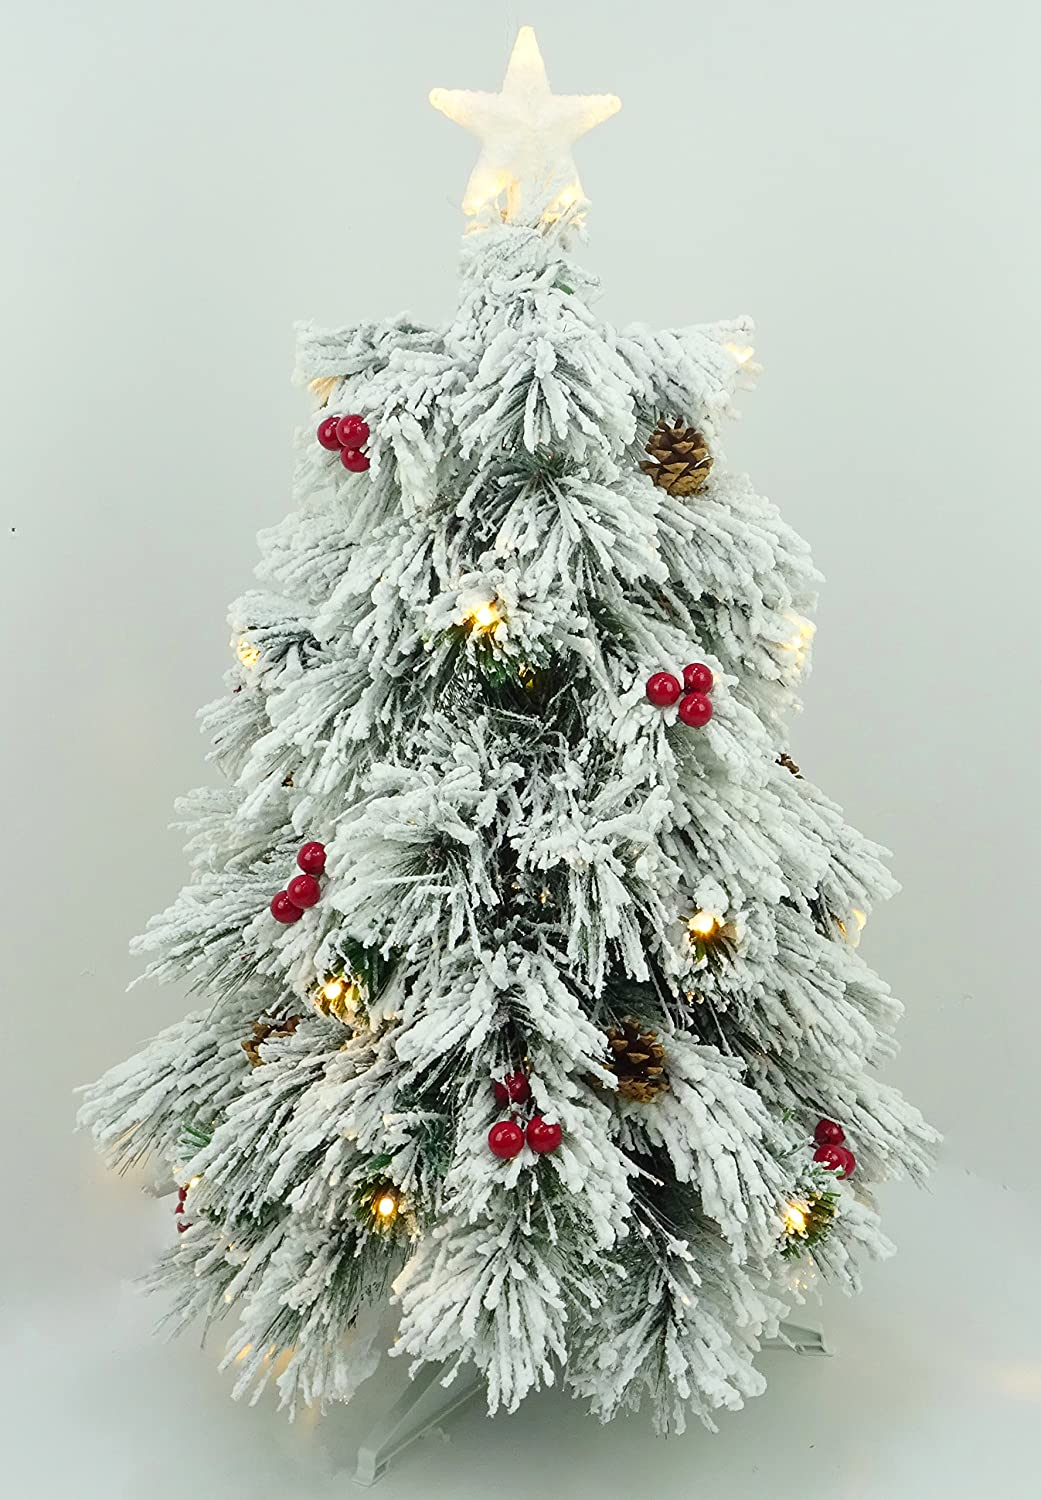 Christmas Concepts® 3ft (90cm) Pre Lit Snow Frosted Fibre Optic Pine Christmas Tree With Cones, Red Berries And LED Lights